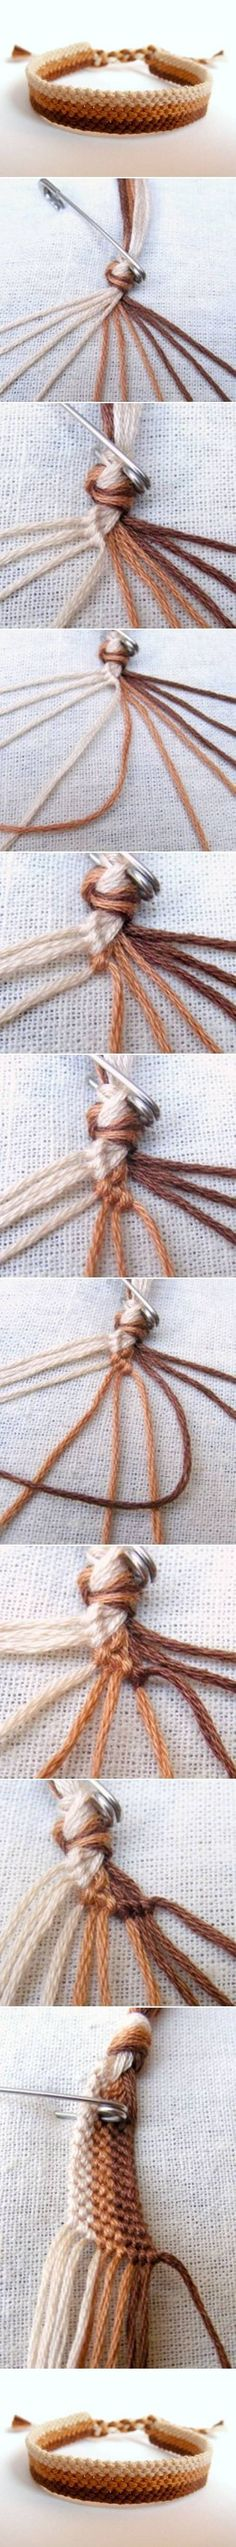 DIY Weave Braclet diy crafts craft ideas easy crafts diy ideas crafty easy diy diy jewelry diy bracelet craft bracelet jewelry diy